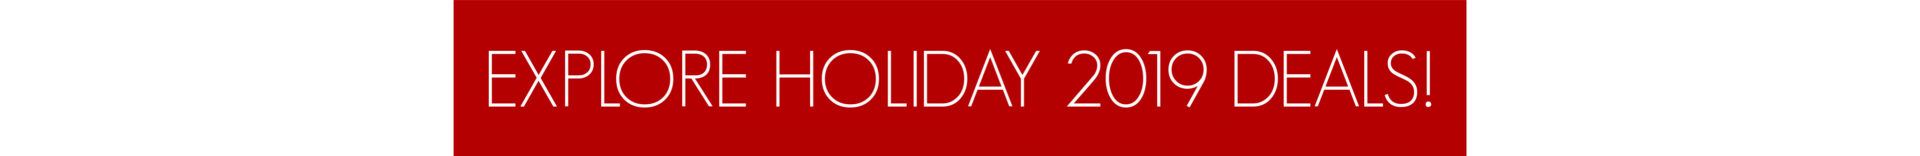 holiday 2019 DEALS